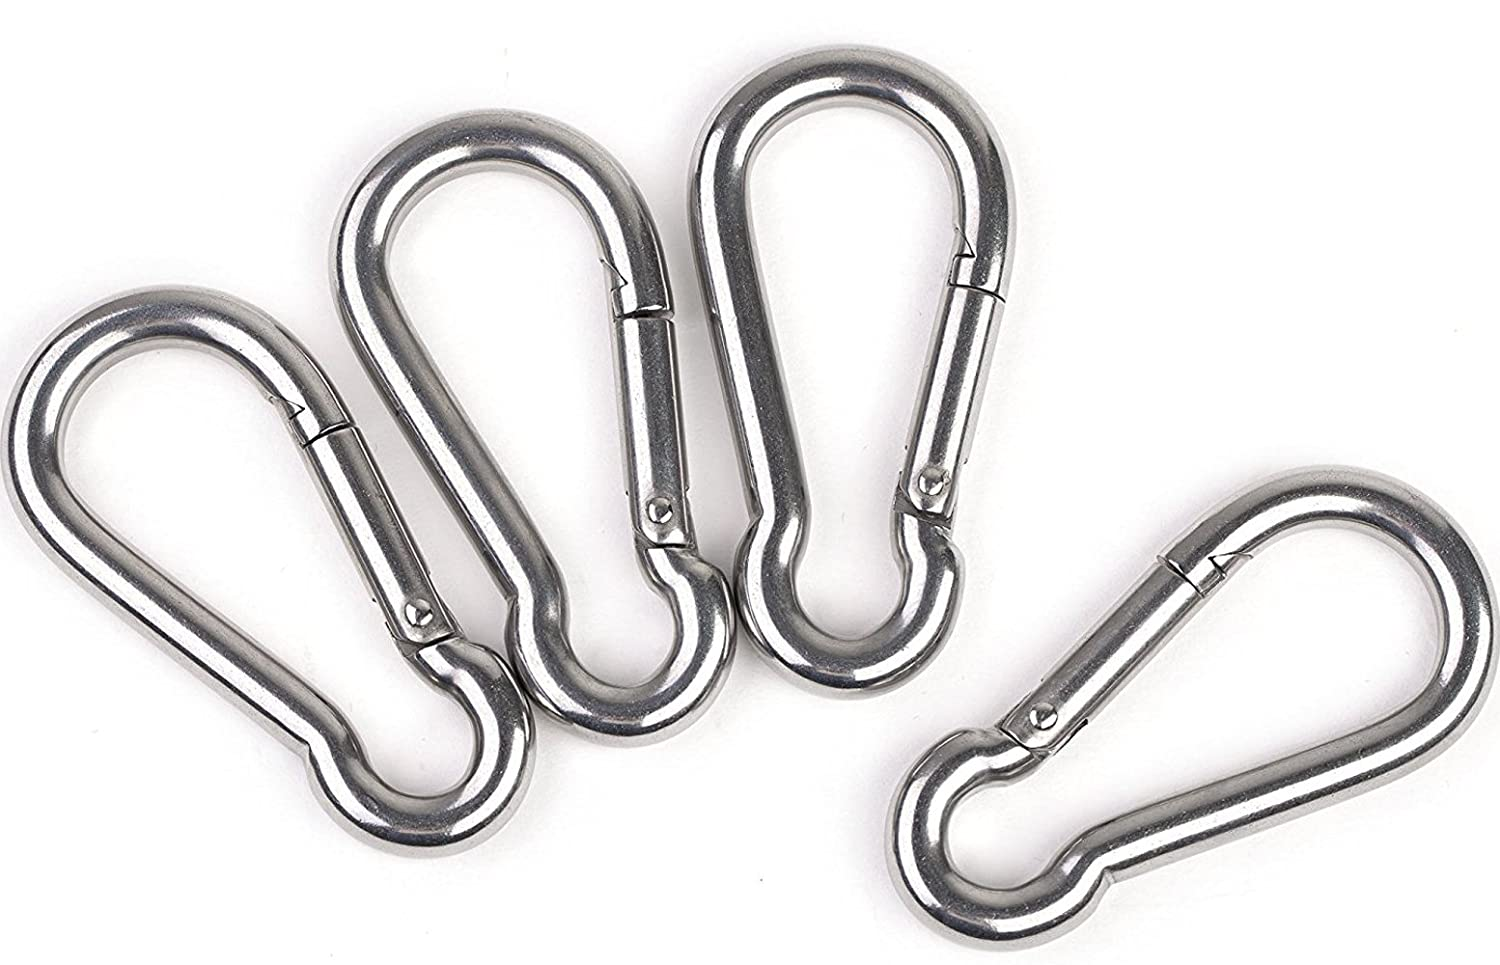 Faswin 3 Inch Stainless Steel Spring Snap Hook Carabiner, Set of 4 71AjRIoiWHL